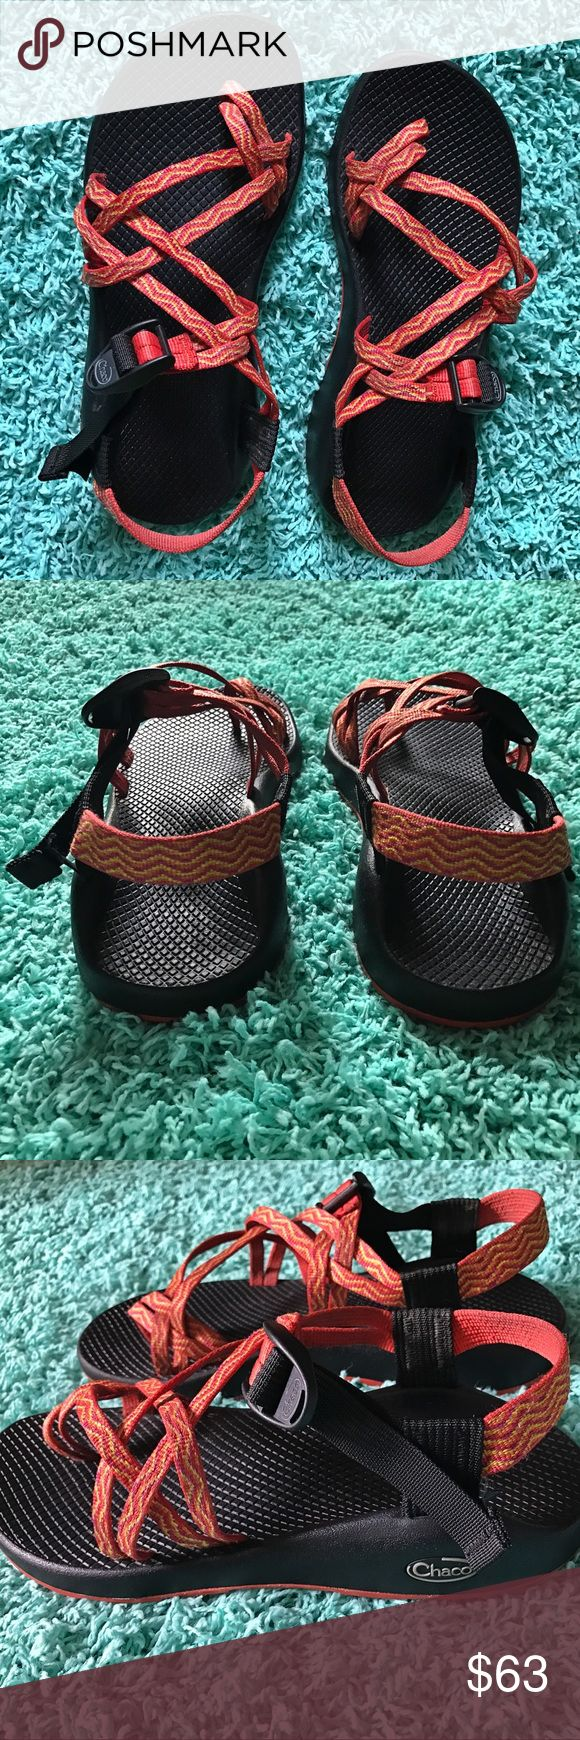 chacos.  orange and yellow chacos, size 9, bought them for a beach trip and barely wore them, excellent condition, original box included. Chaco Shoes Sandals